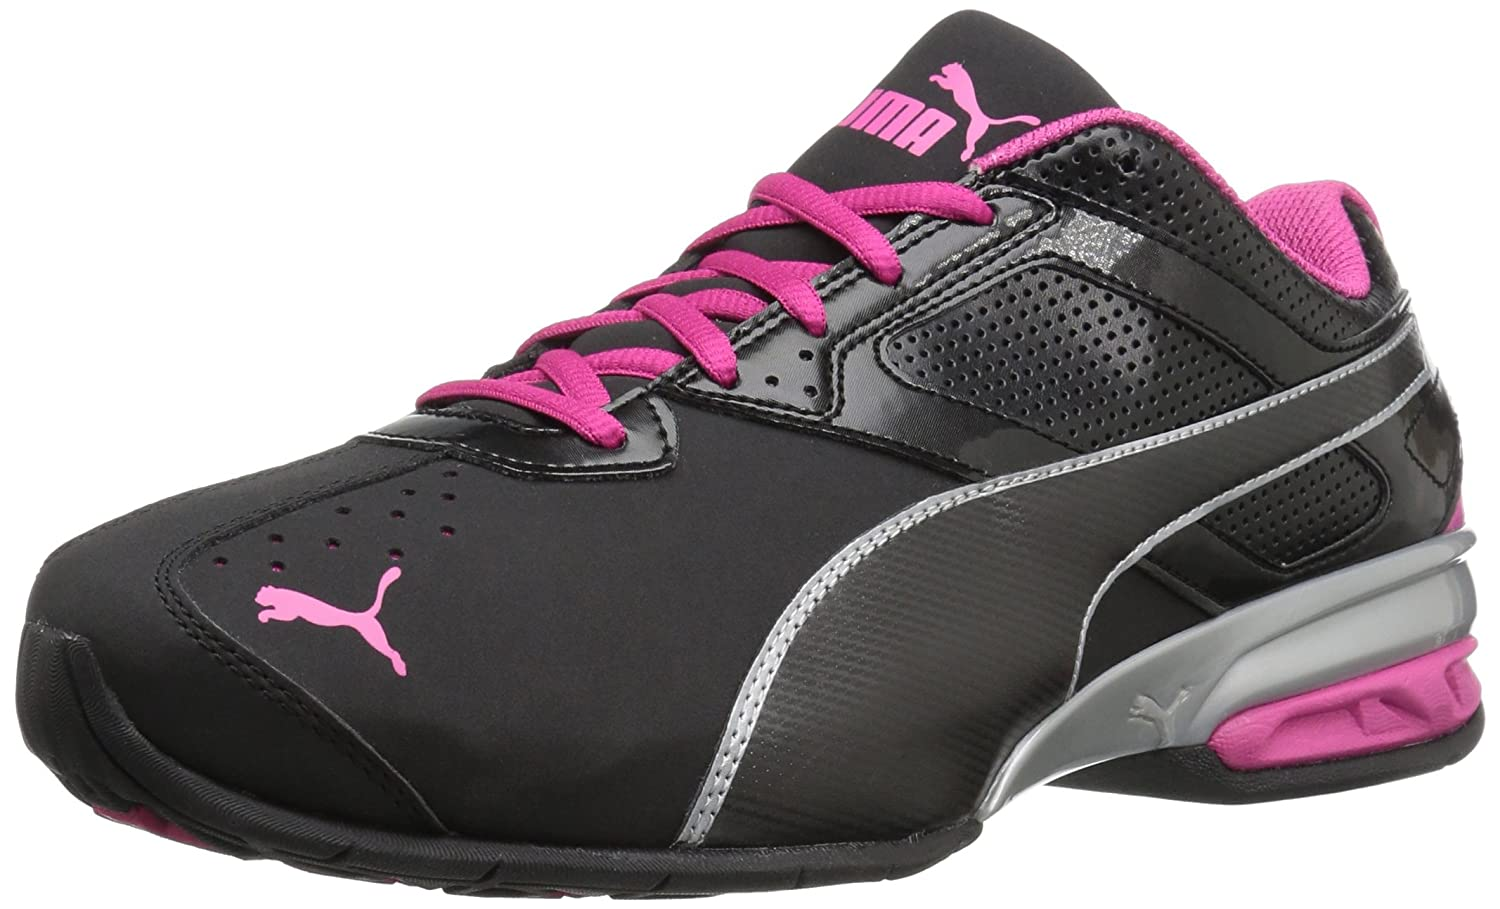 PUMA Women's Tazon 6 WN's FM Cross-Trainer Shoe TAZON 6 WN'S FM-W